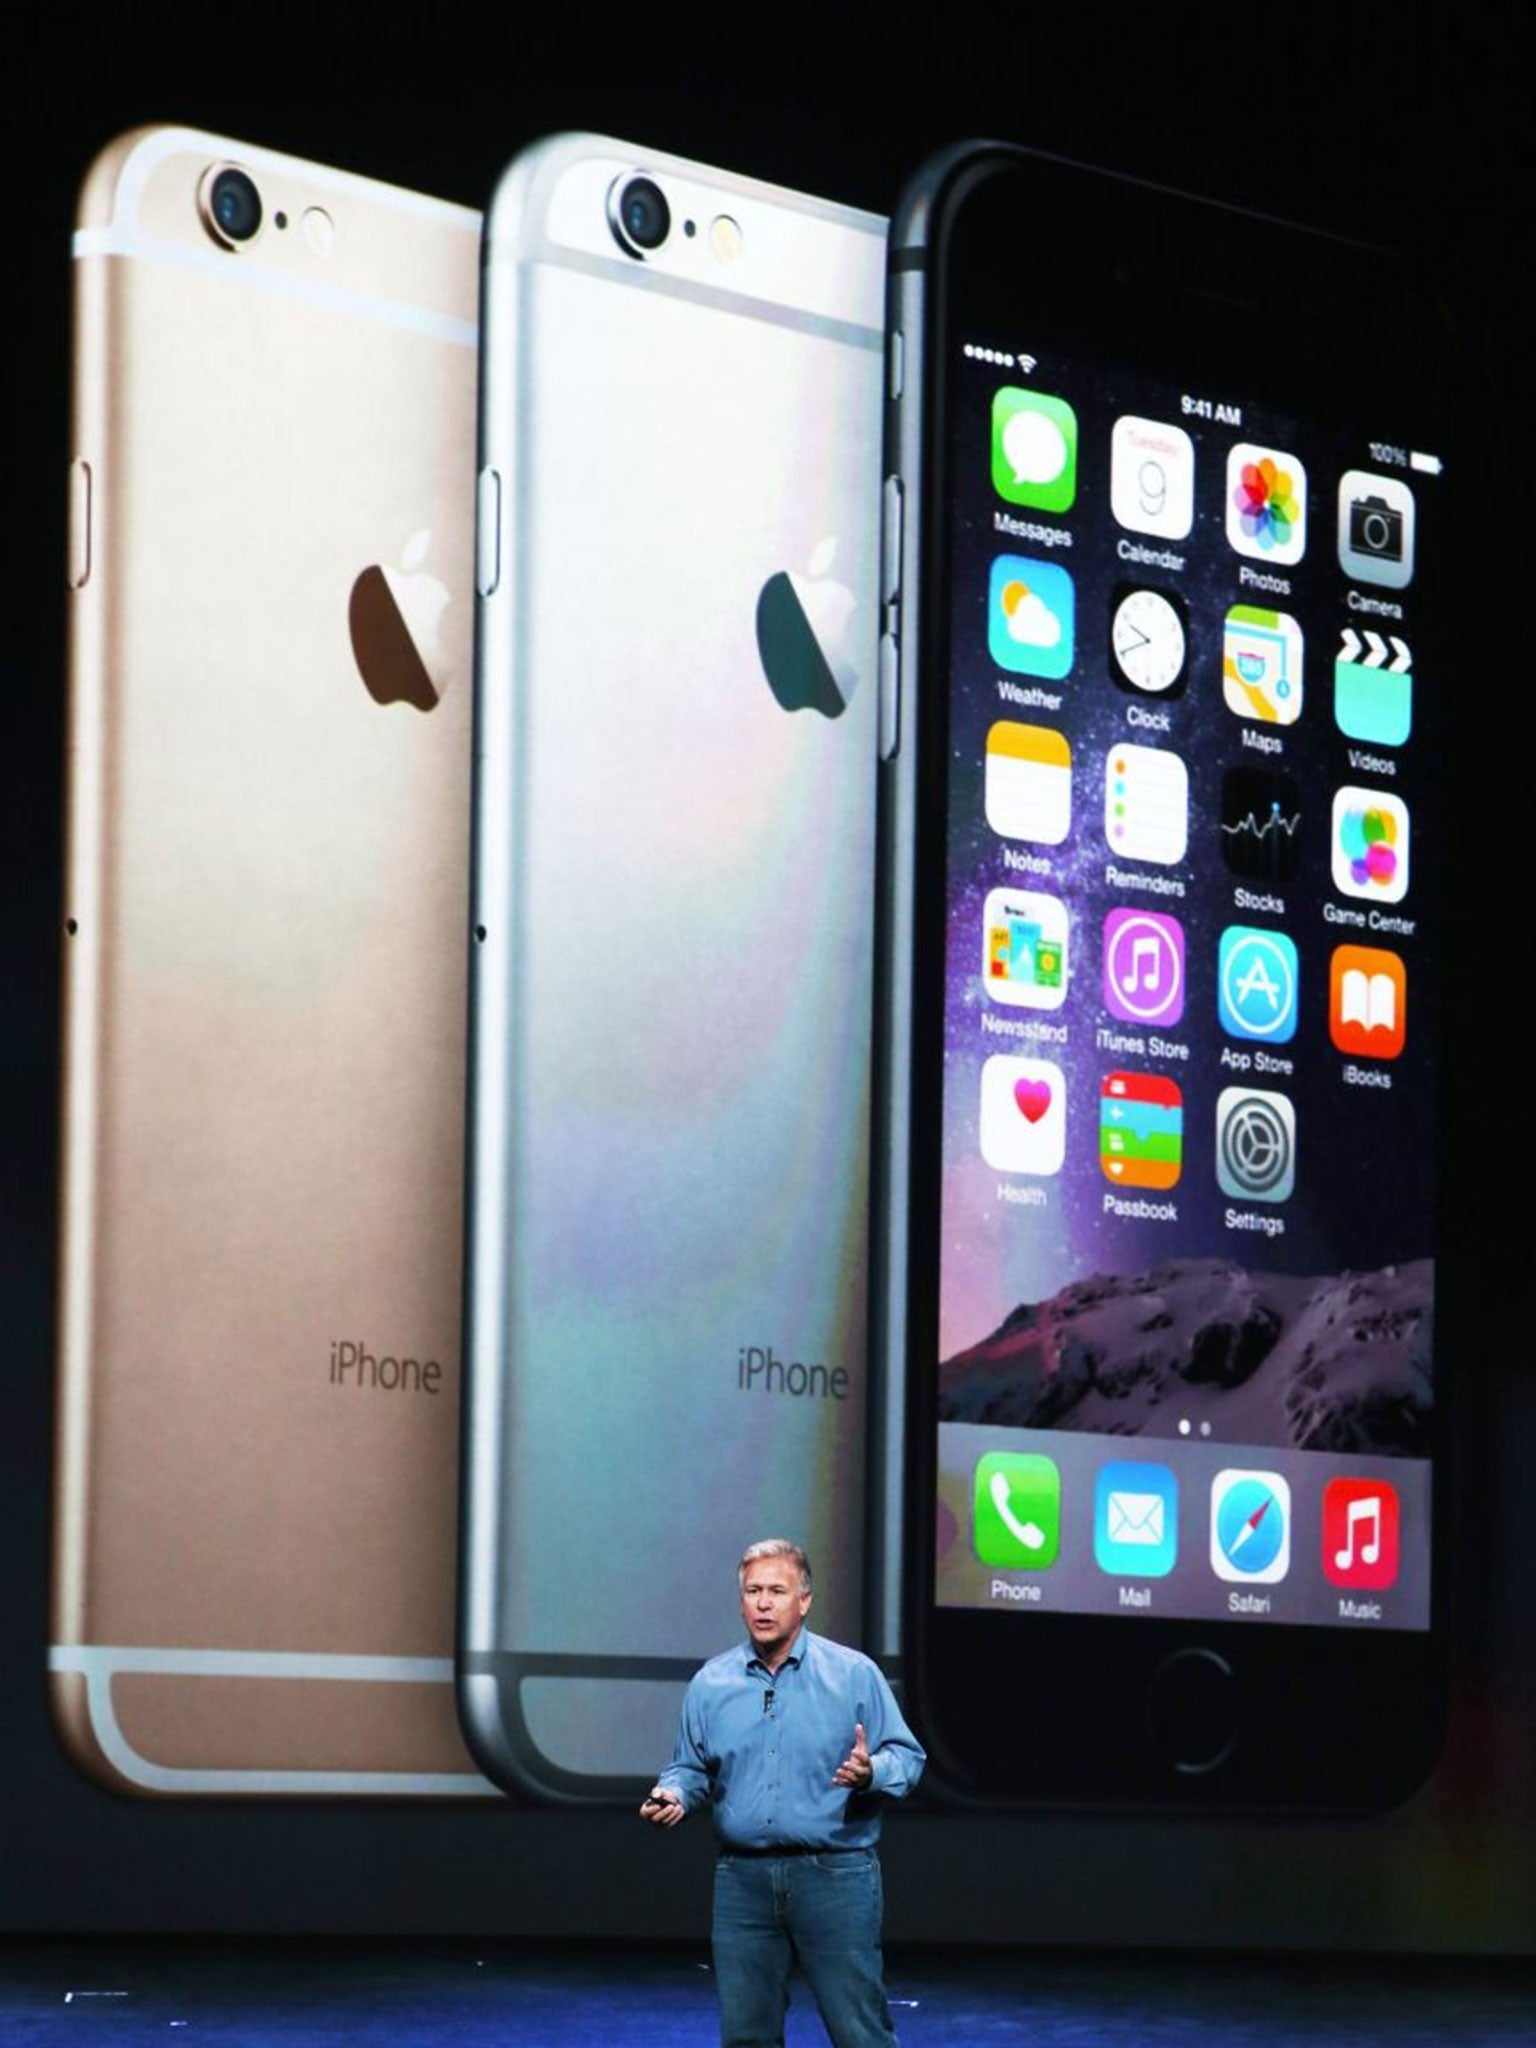 Apple Iphone 6 Price How Much Will It Cost In The United Kingdom 6plus 16